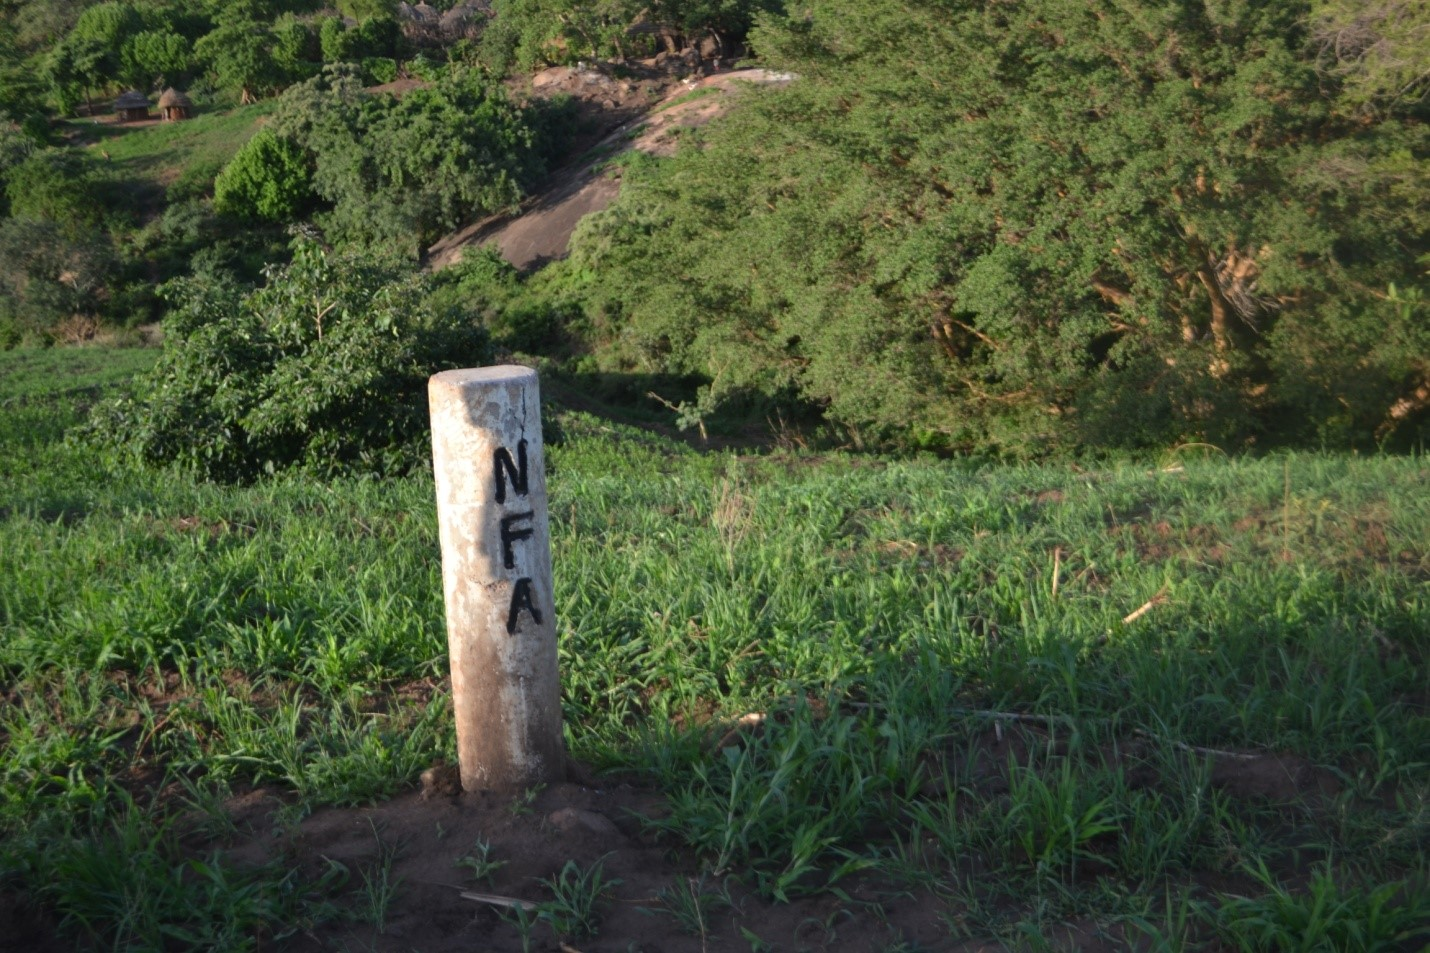 Morongole Central Forest Reserve boundary opened and marked with permanent pillars